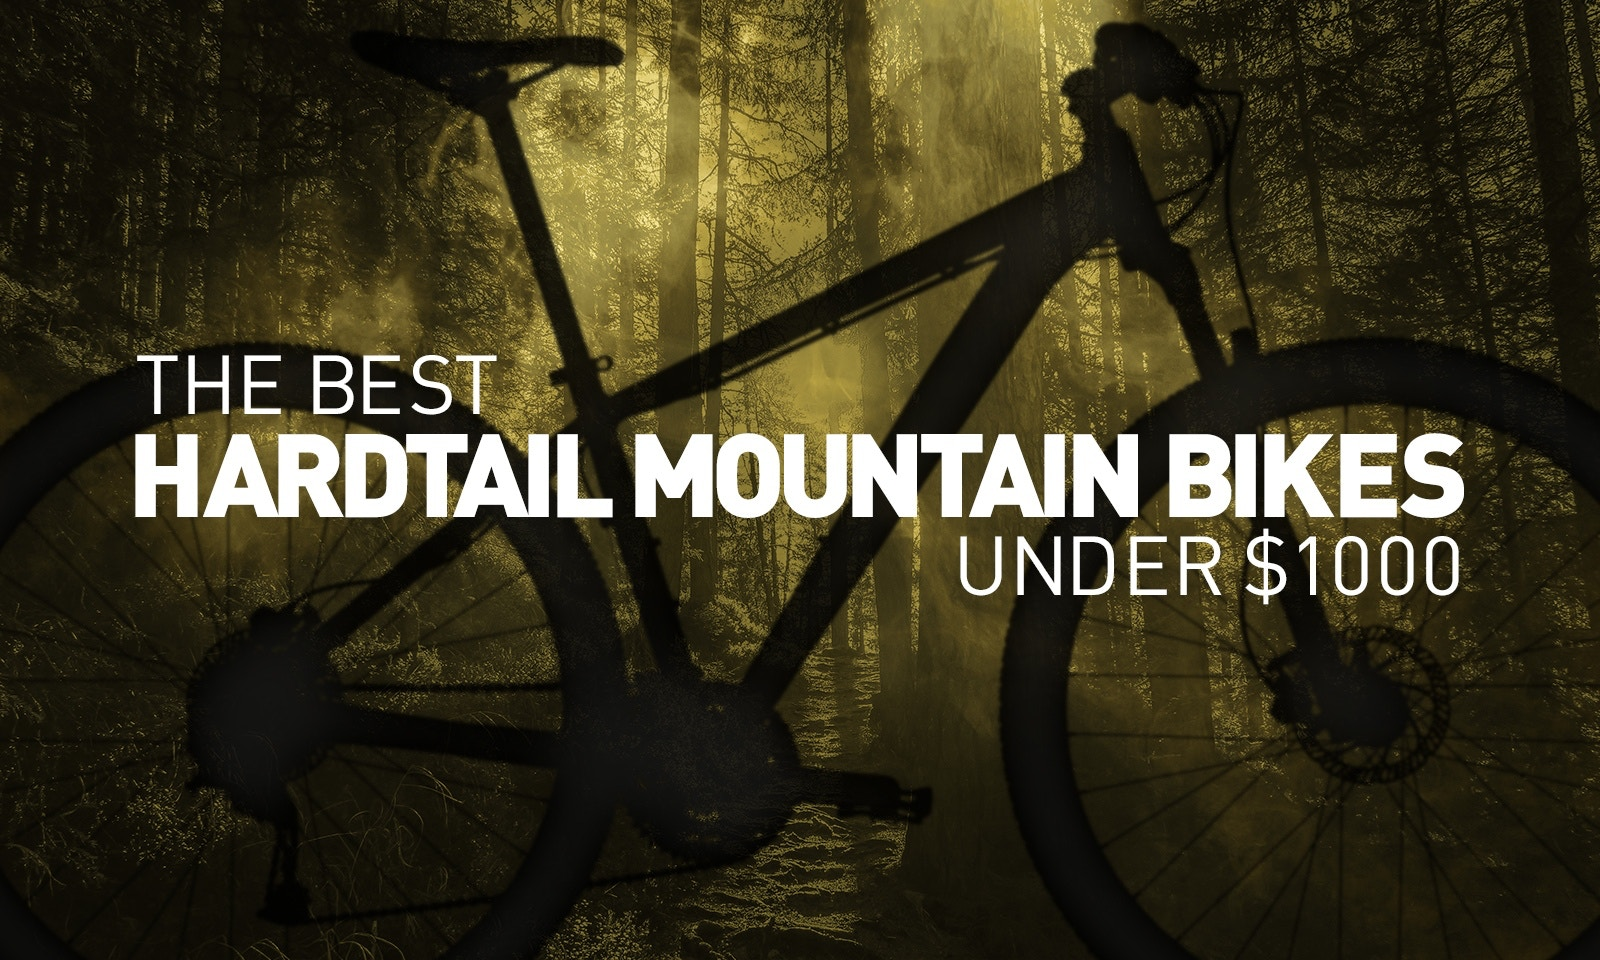 Best Hardtail Mountain Bikes of 2017 for under $1,000